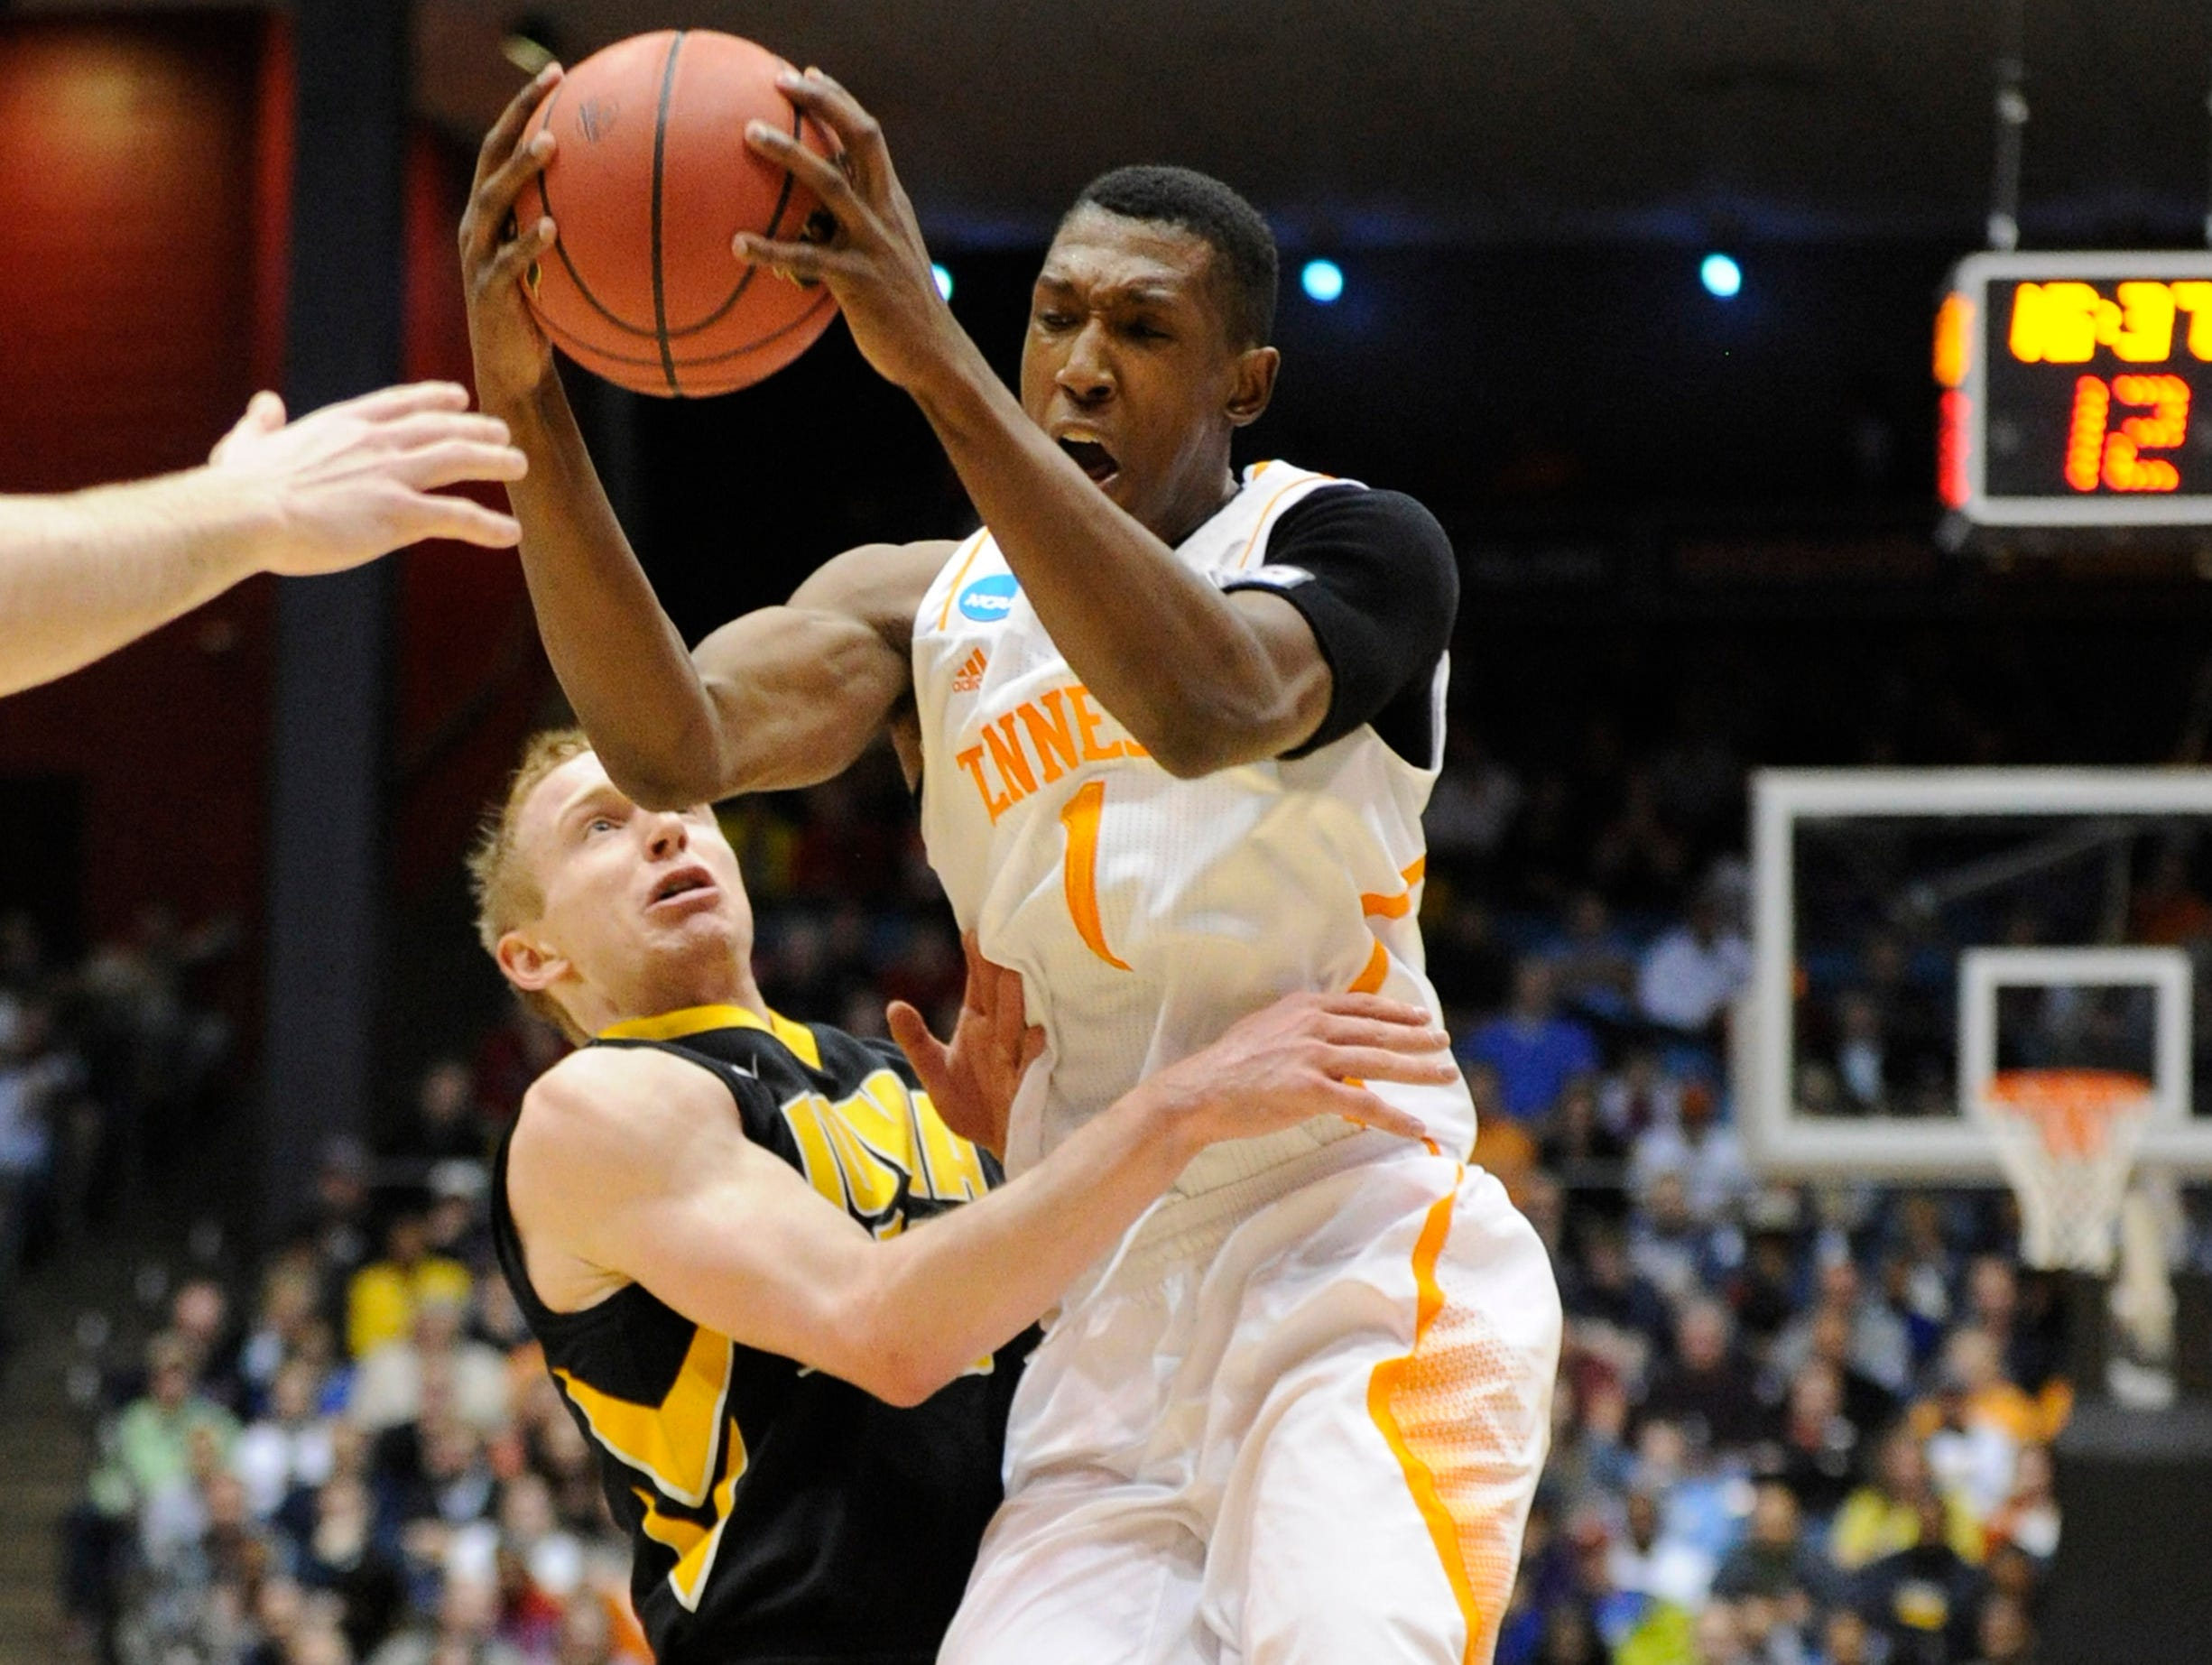 Iowa guard Mike Gesell (10) grabs Tennessee guard Josh Richardson (1) during the first half of an NCAA tournament First Four play-in game at the University of Dayton Arena in Dayton, Ohio on Wednesday, March 19, 2014.